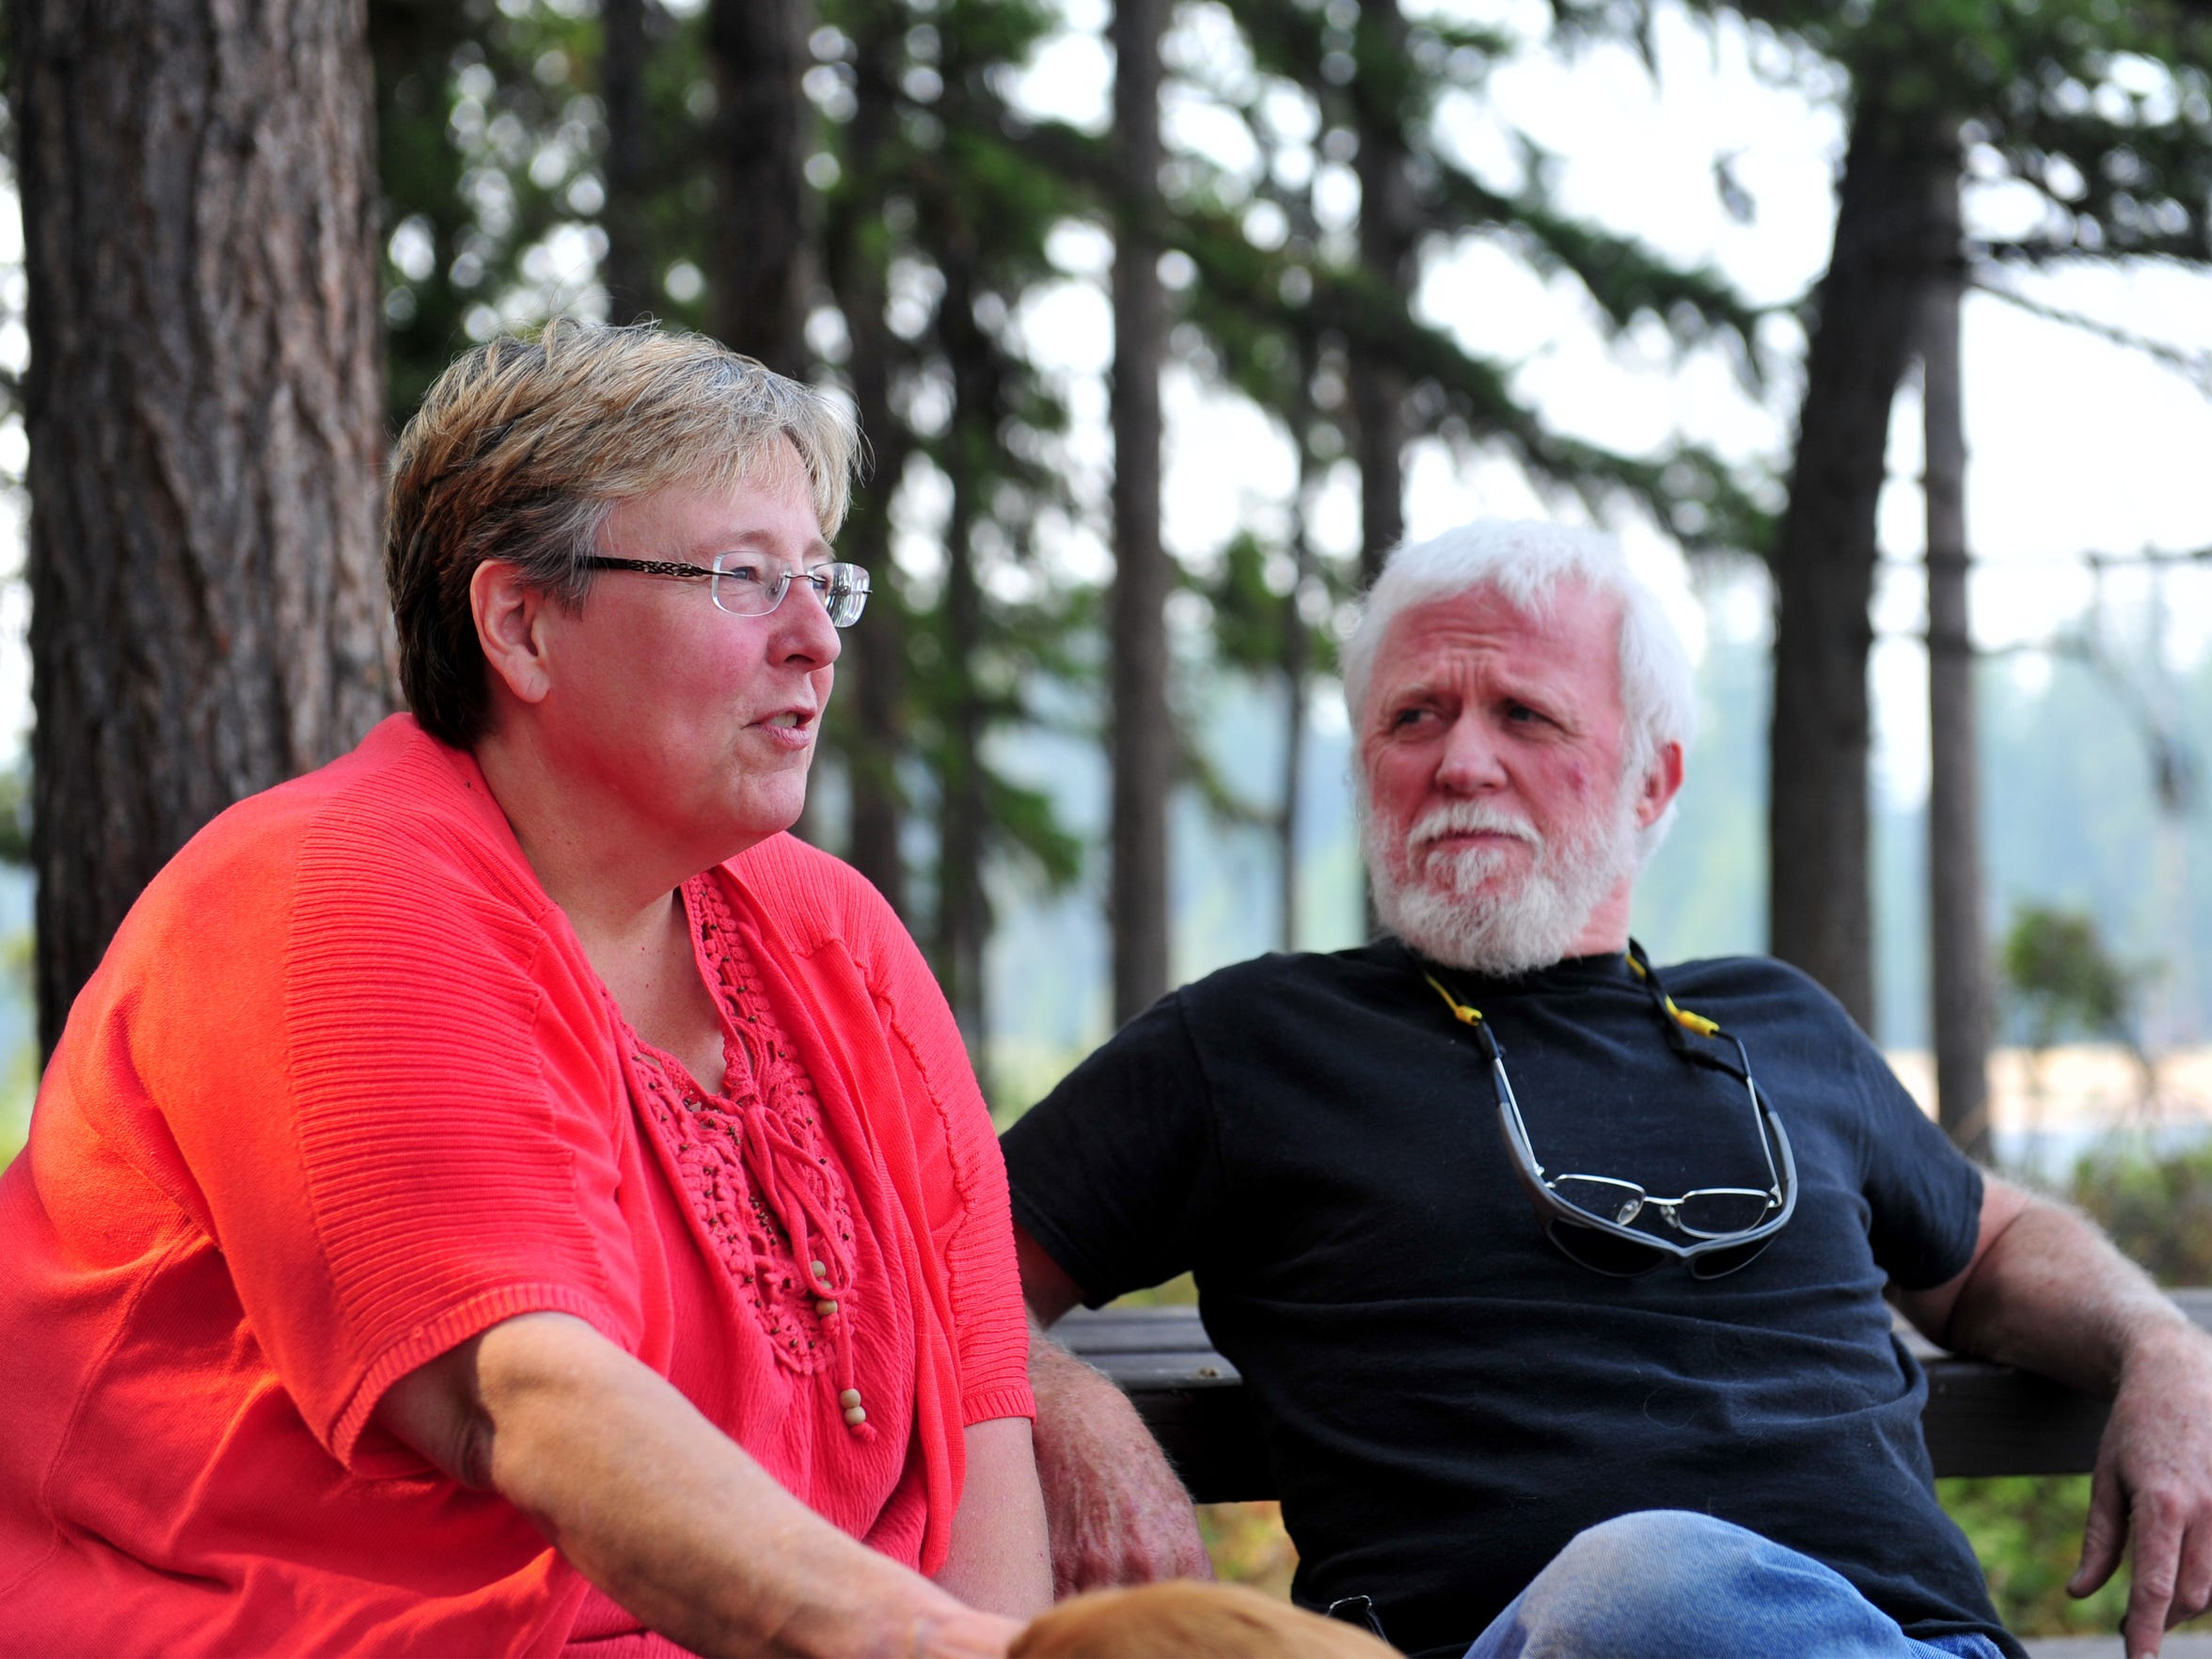 Maxine Ramey and Lloyd Jenkins were evacuated from their home in Seeley Lake due to the Rice Ridge Fire, which continues to threaten the town as it burns in the Lolo National Forest.